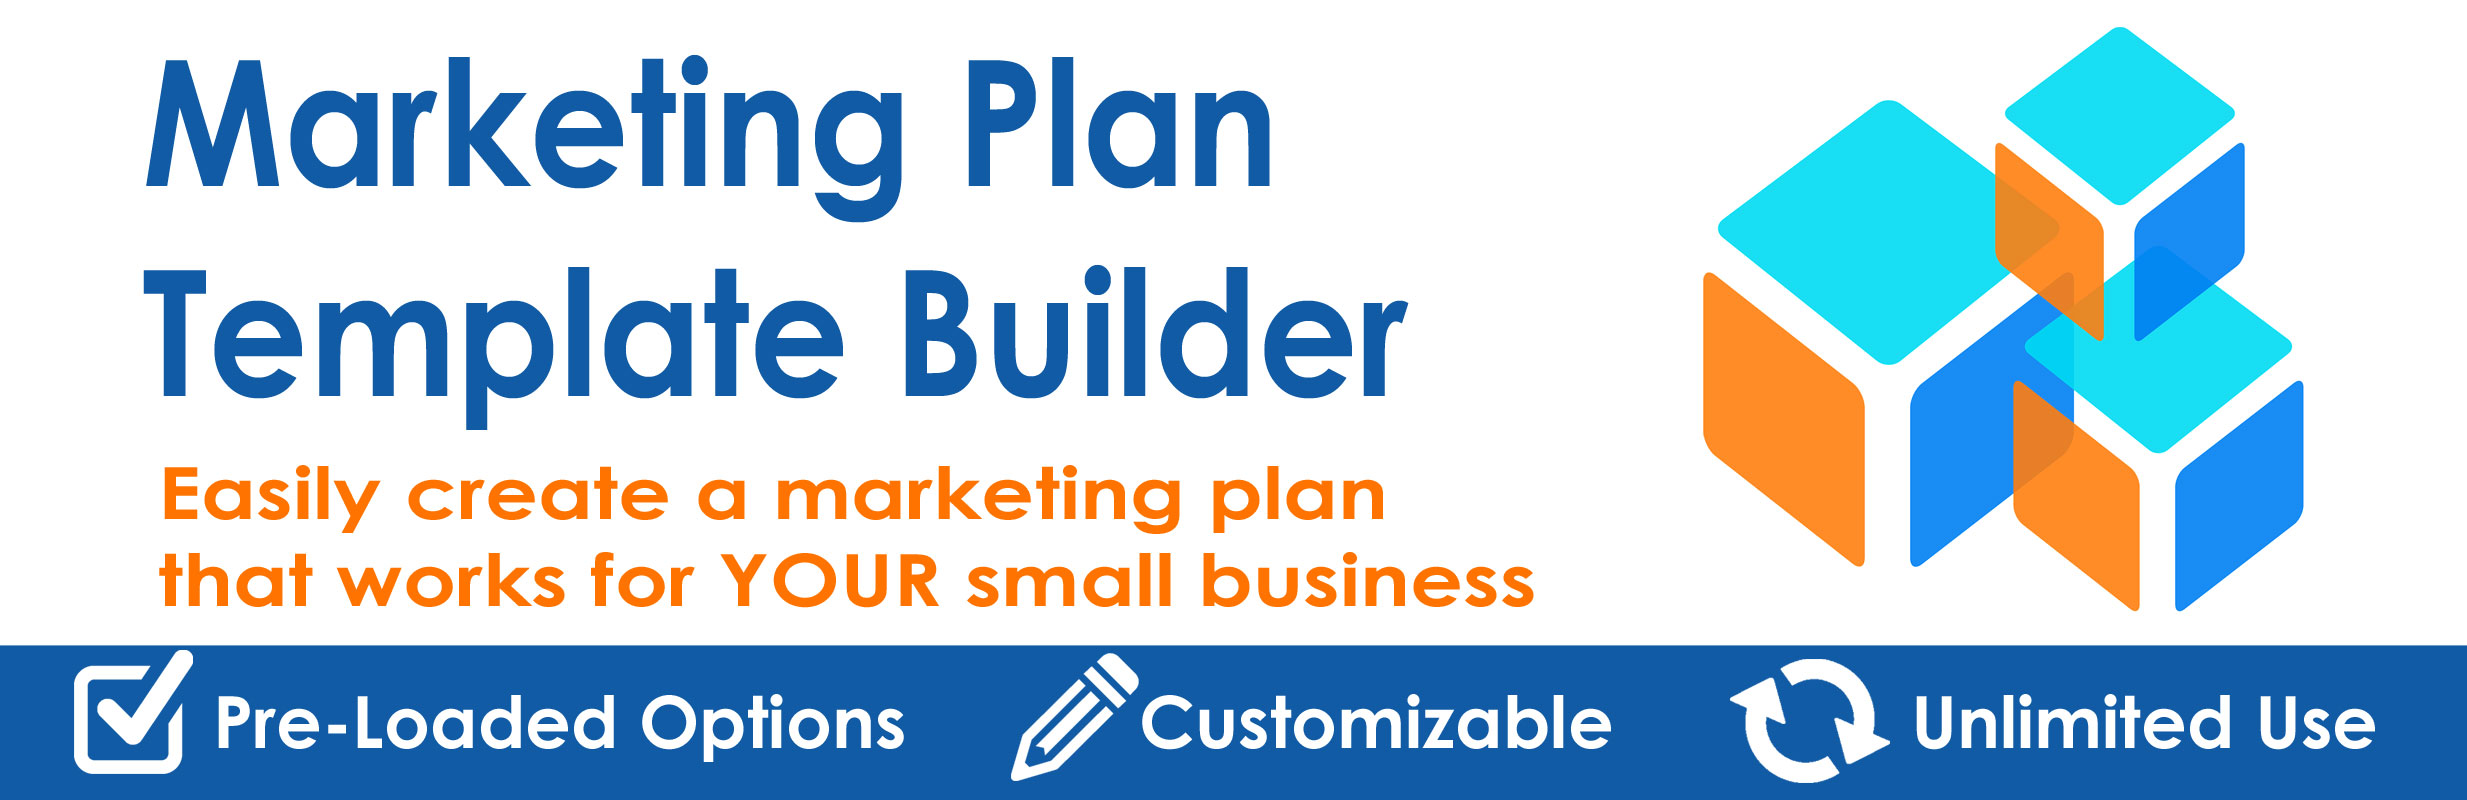 Marketing Plan Template Builder For Tactics And Budget Plans - Marketing plan for small business template